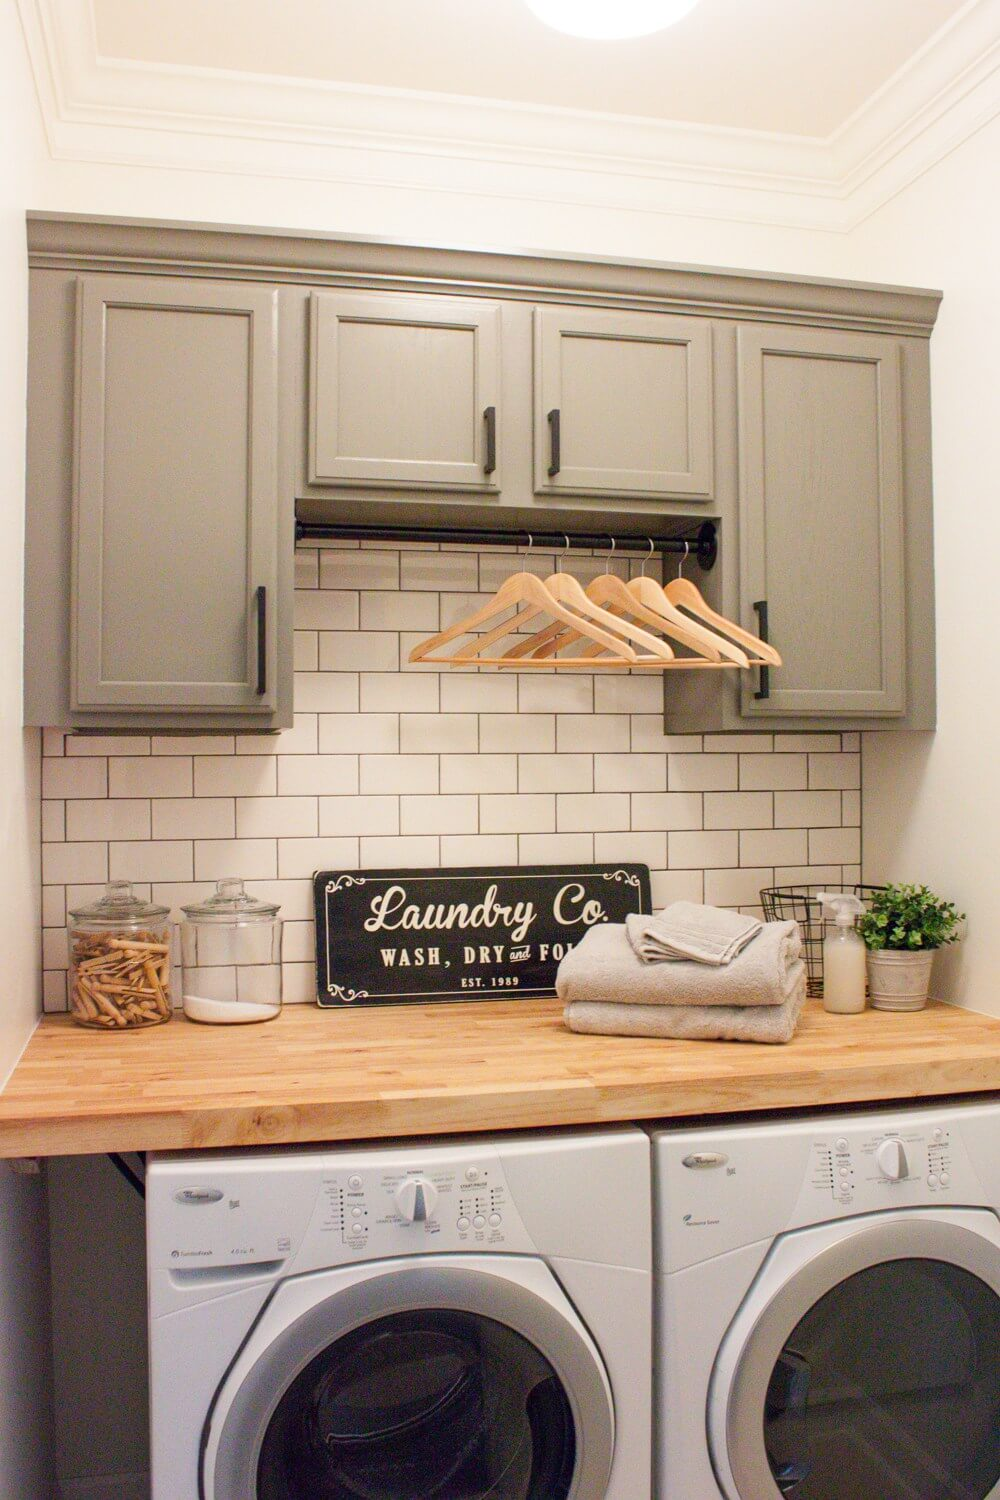 28 Best Small Laundry Room Design Ideas for 2020 on Laundry Decorating Ideas  id=83148